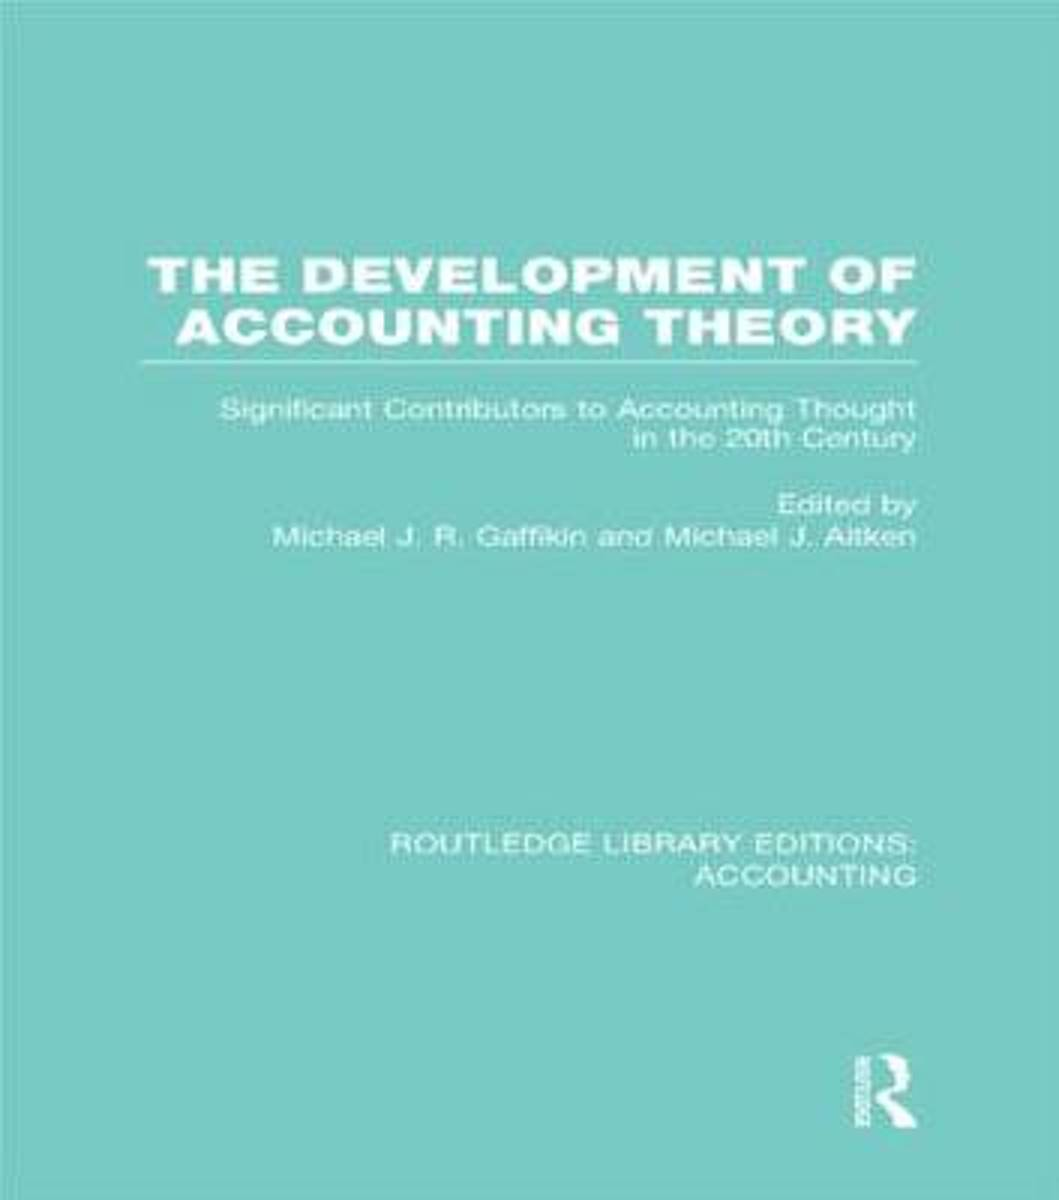 The Development of Accounting Theory